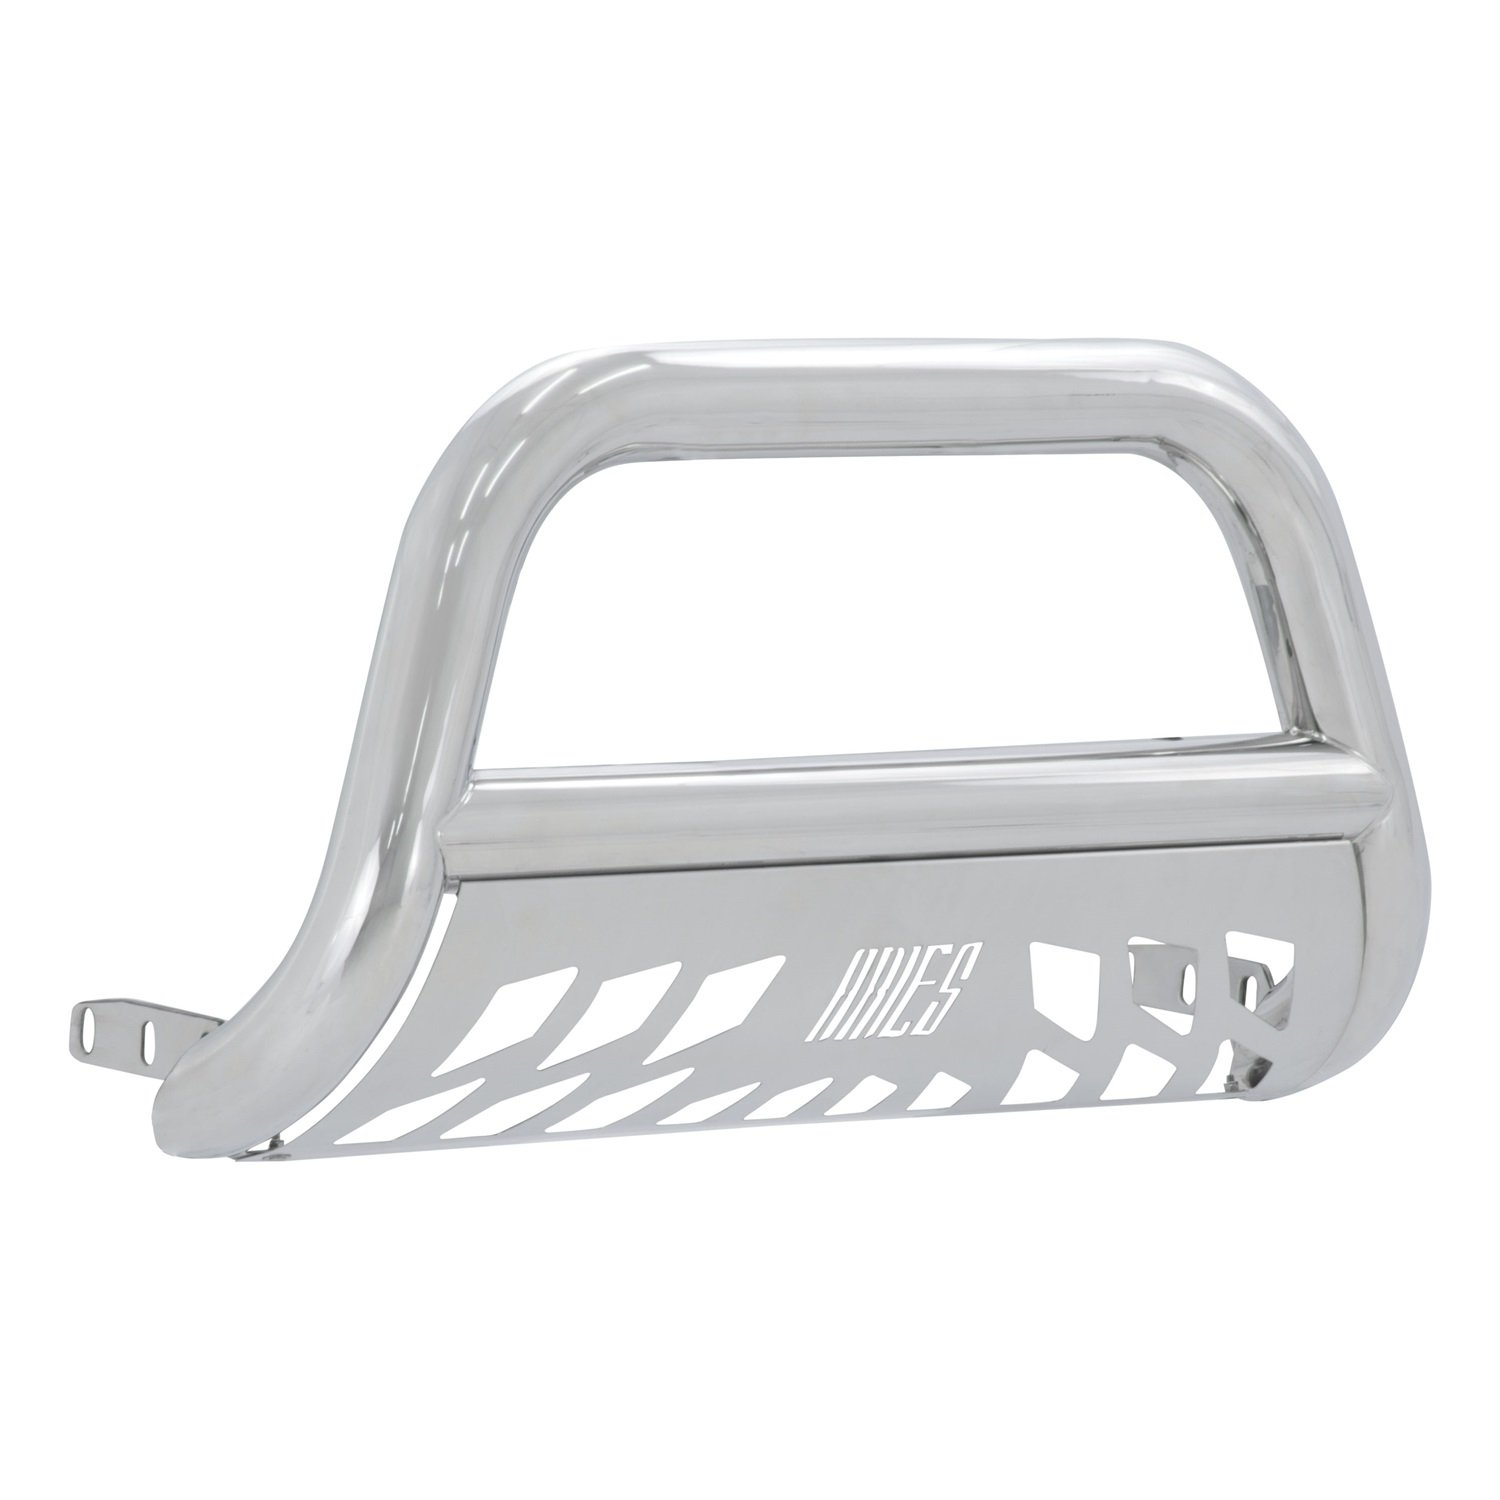 Aries Automotive 35-5003 Stainless Steel Bull Bar with Skid Plate